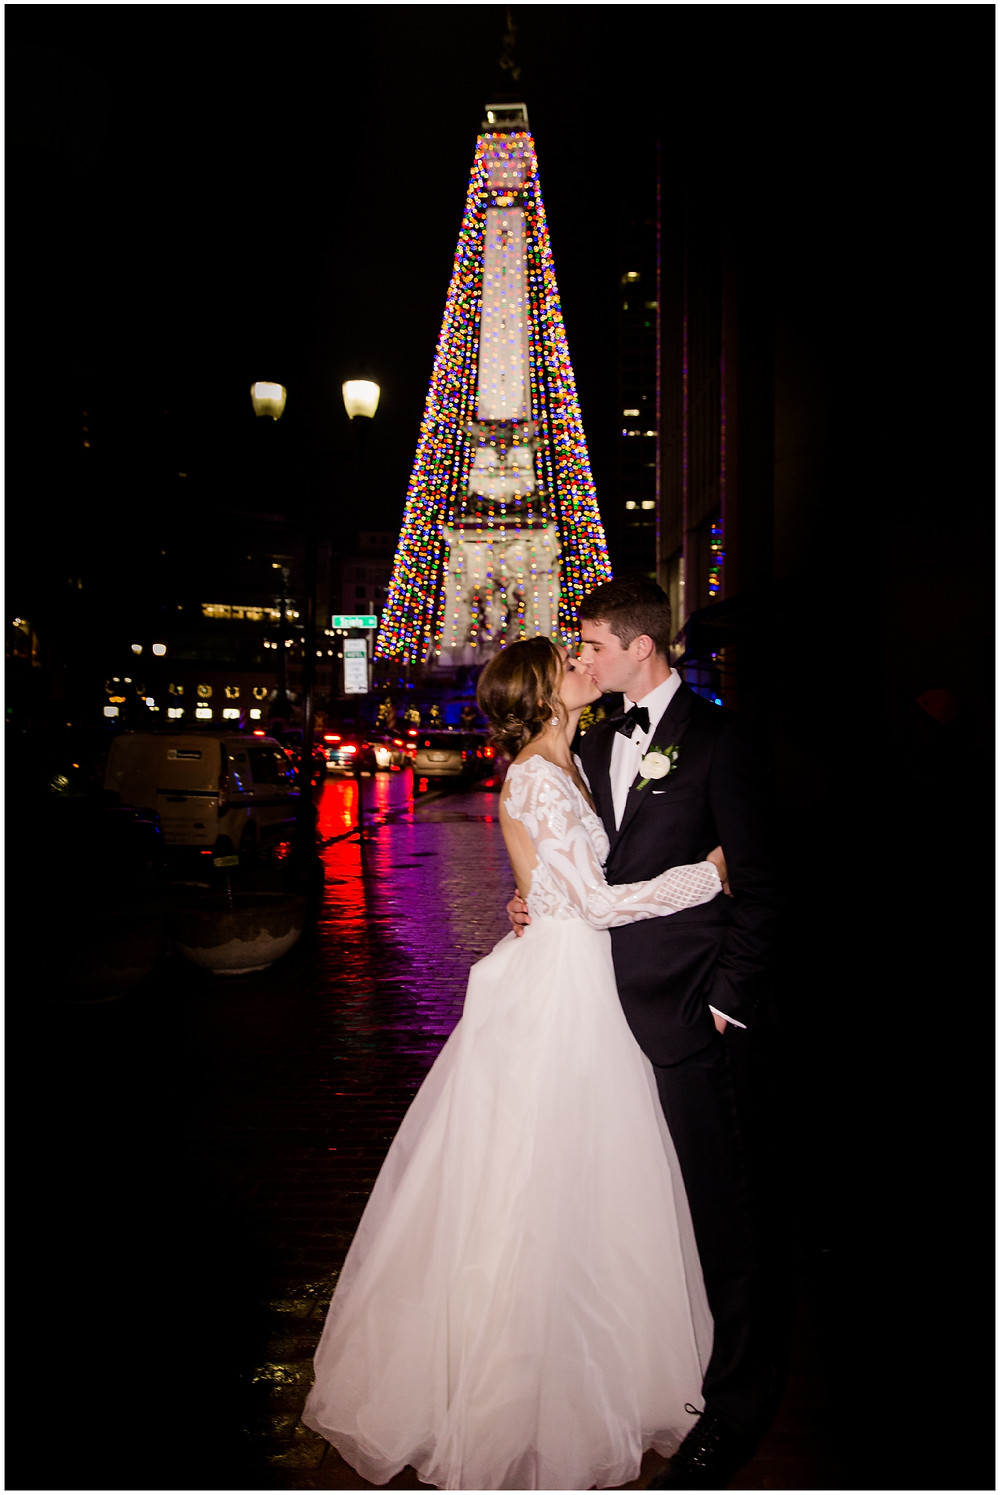 Indianapolis-Circle-of-lights-proposal